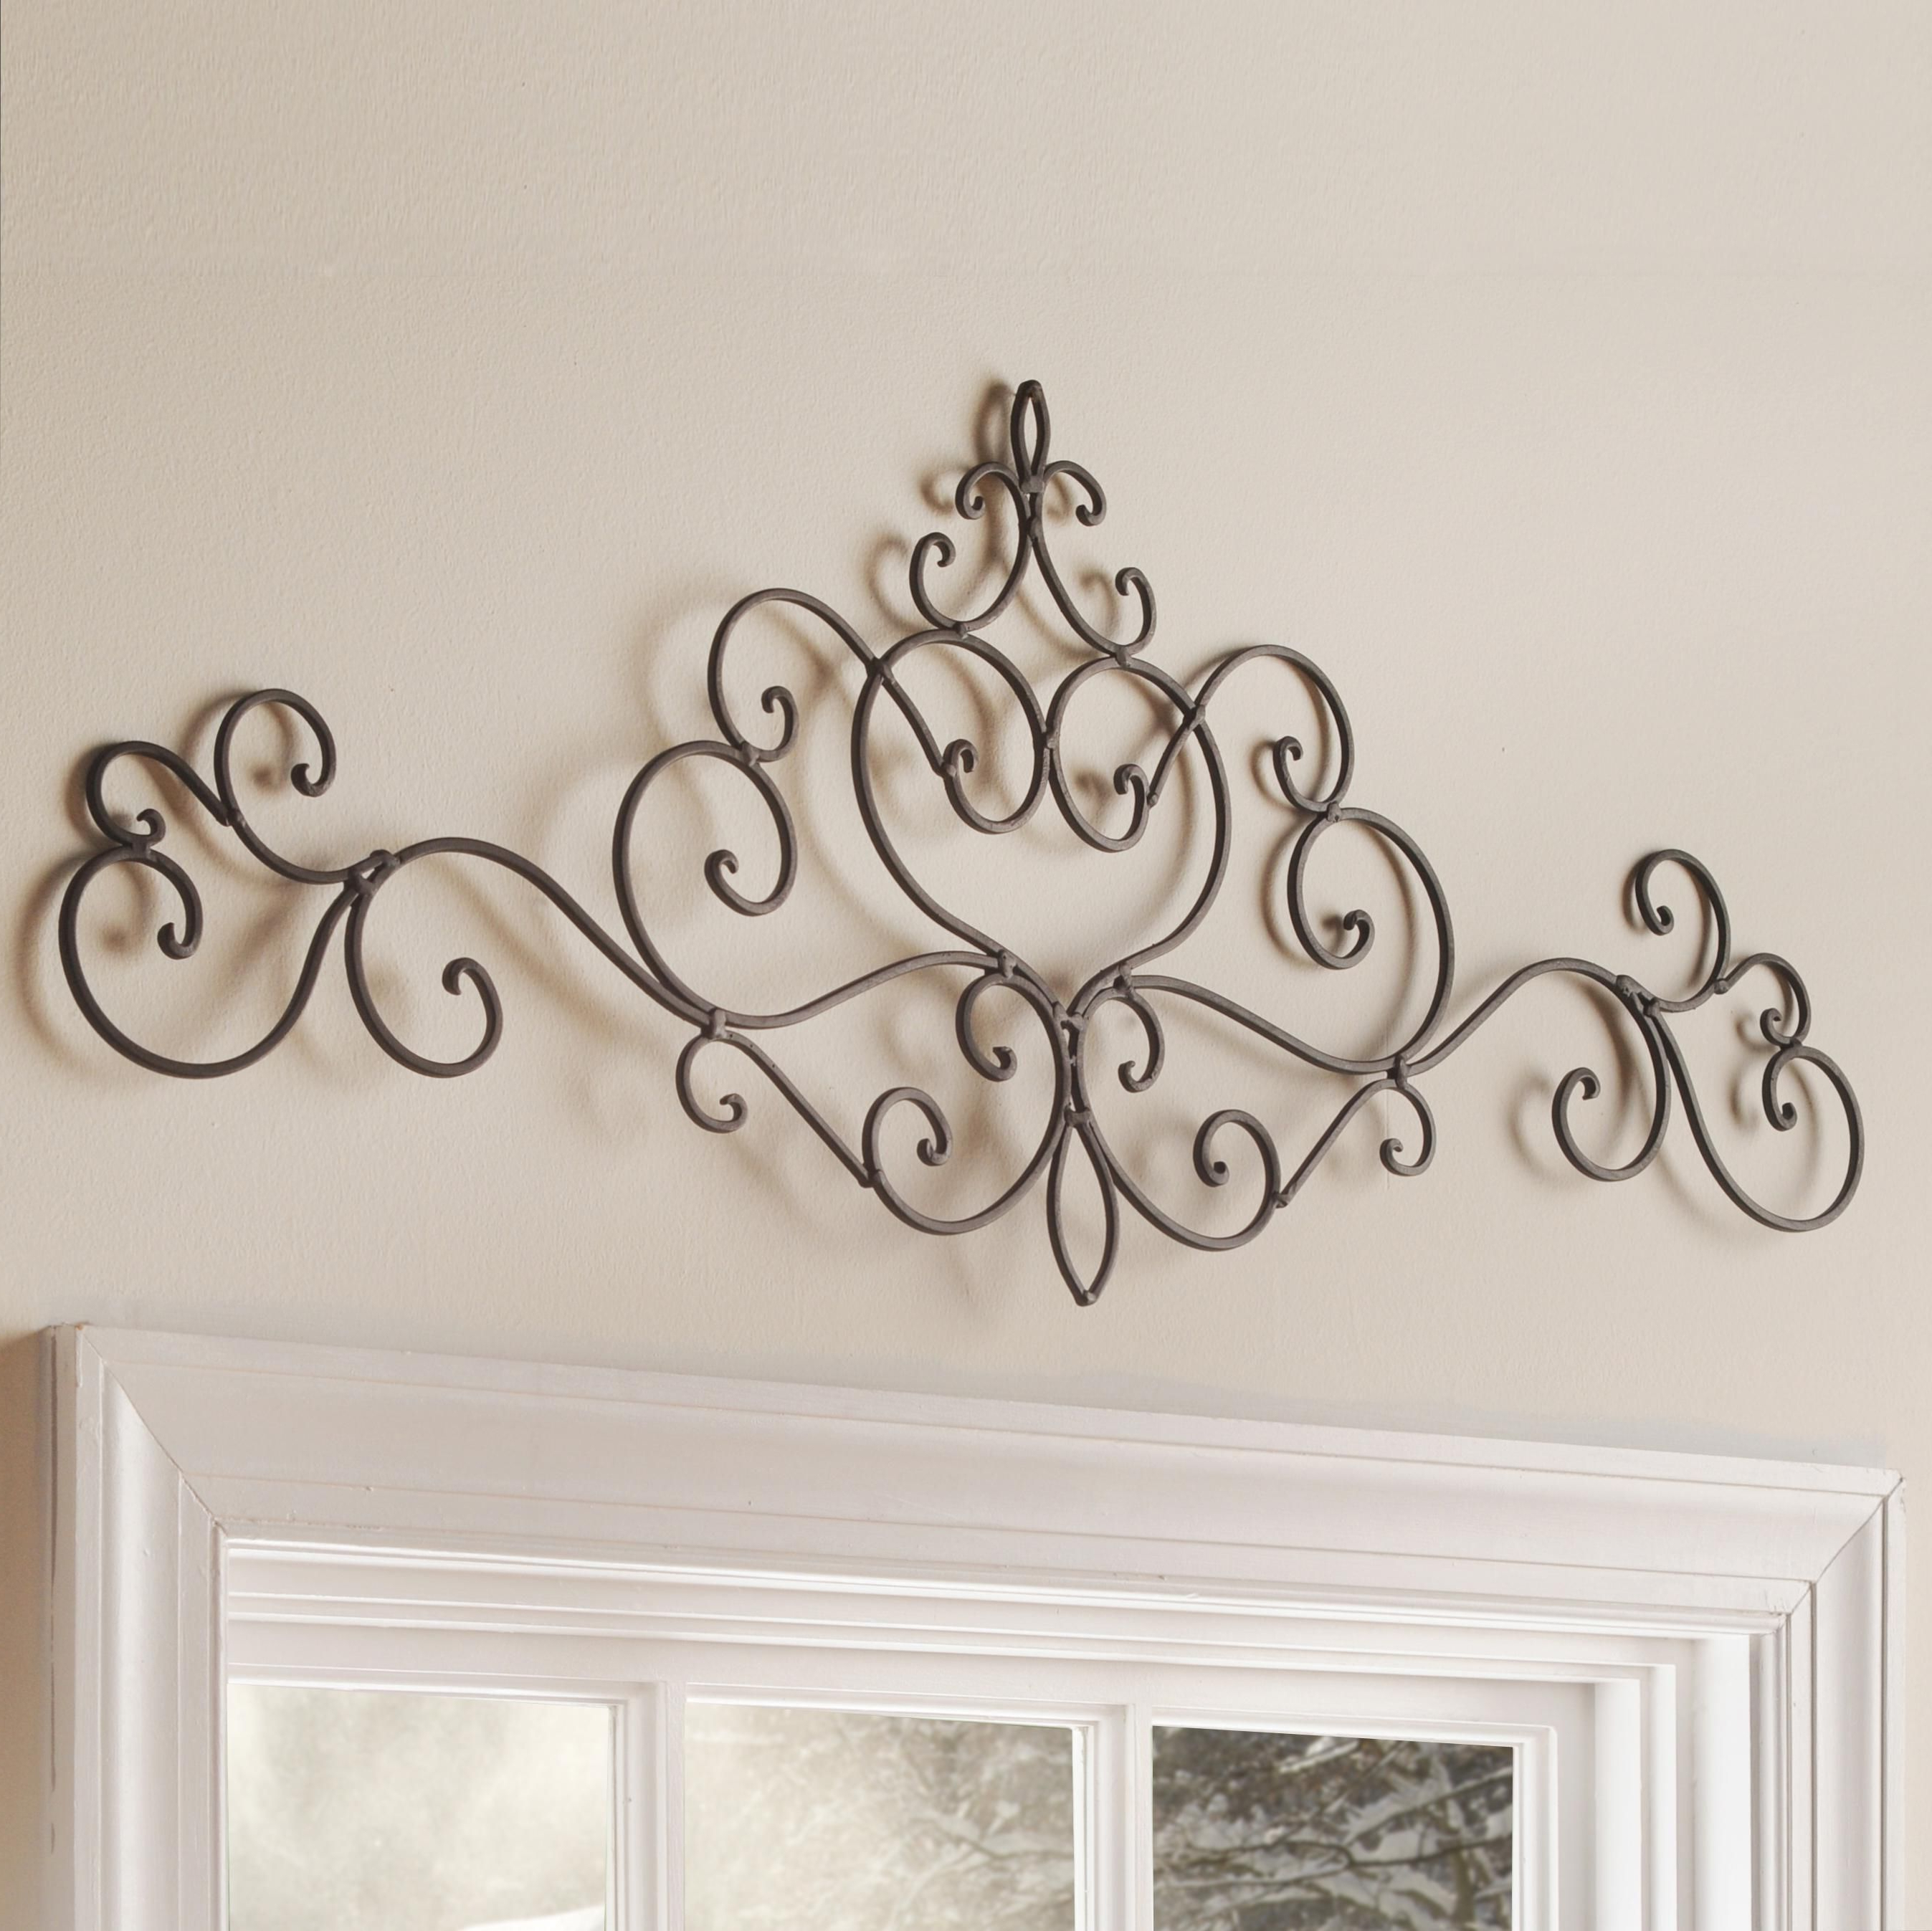 Wall Decor Within Ornamental Wood And Metal Scroll Wall Decor (Gallery 4 of 20)